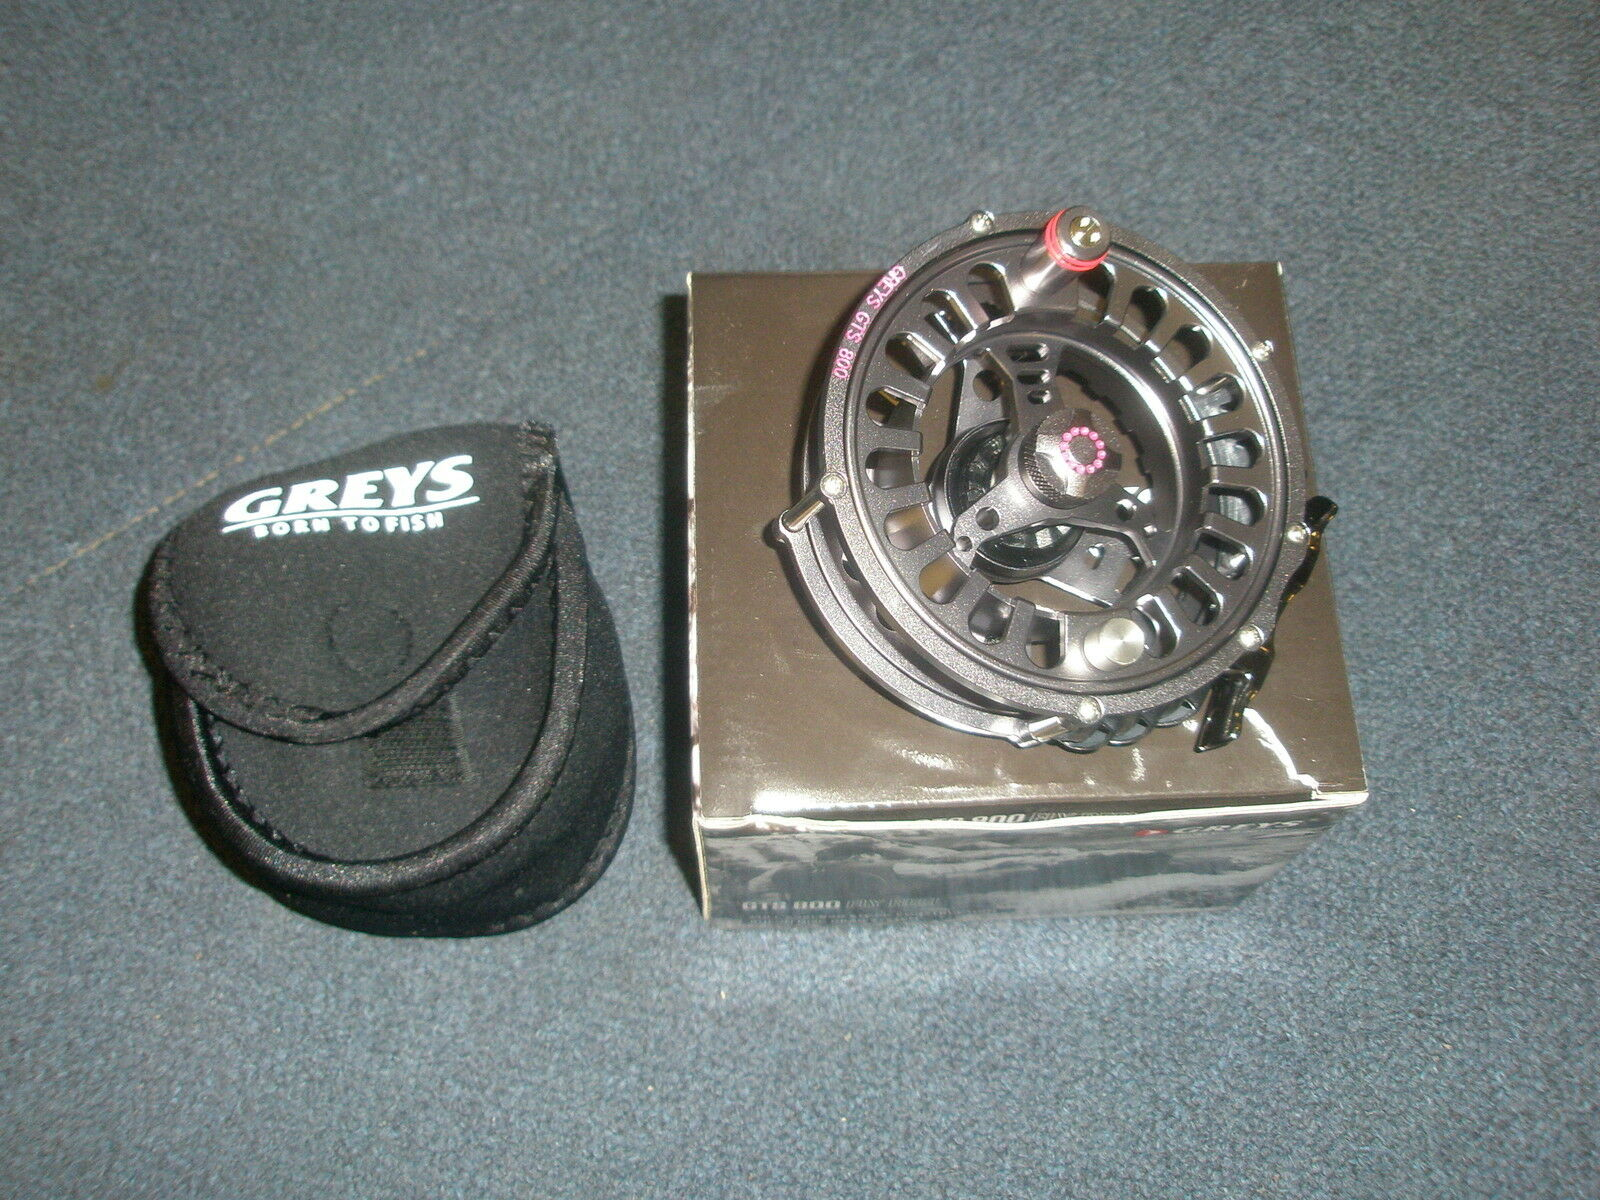 grigios GTS800  911 FLY REEL  Astuccio in Neoprene Pesca Tackle